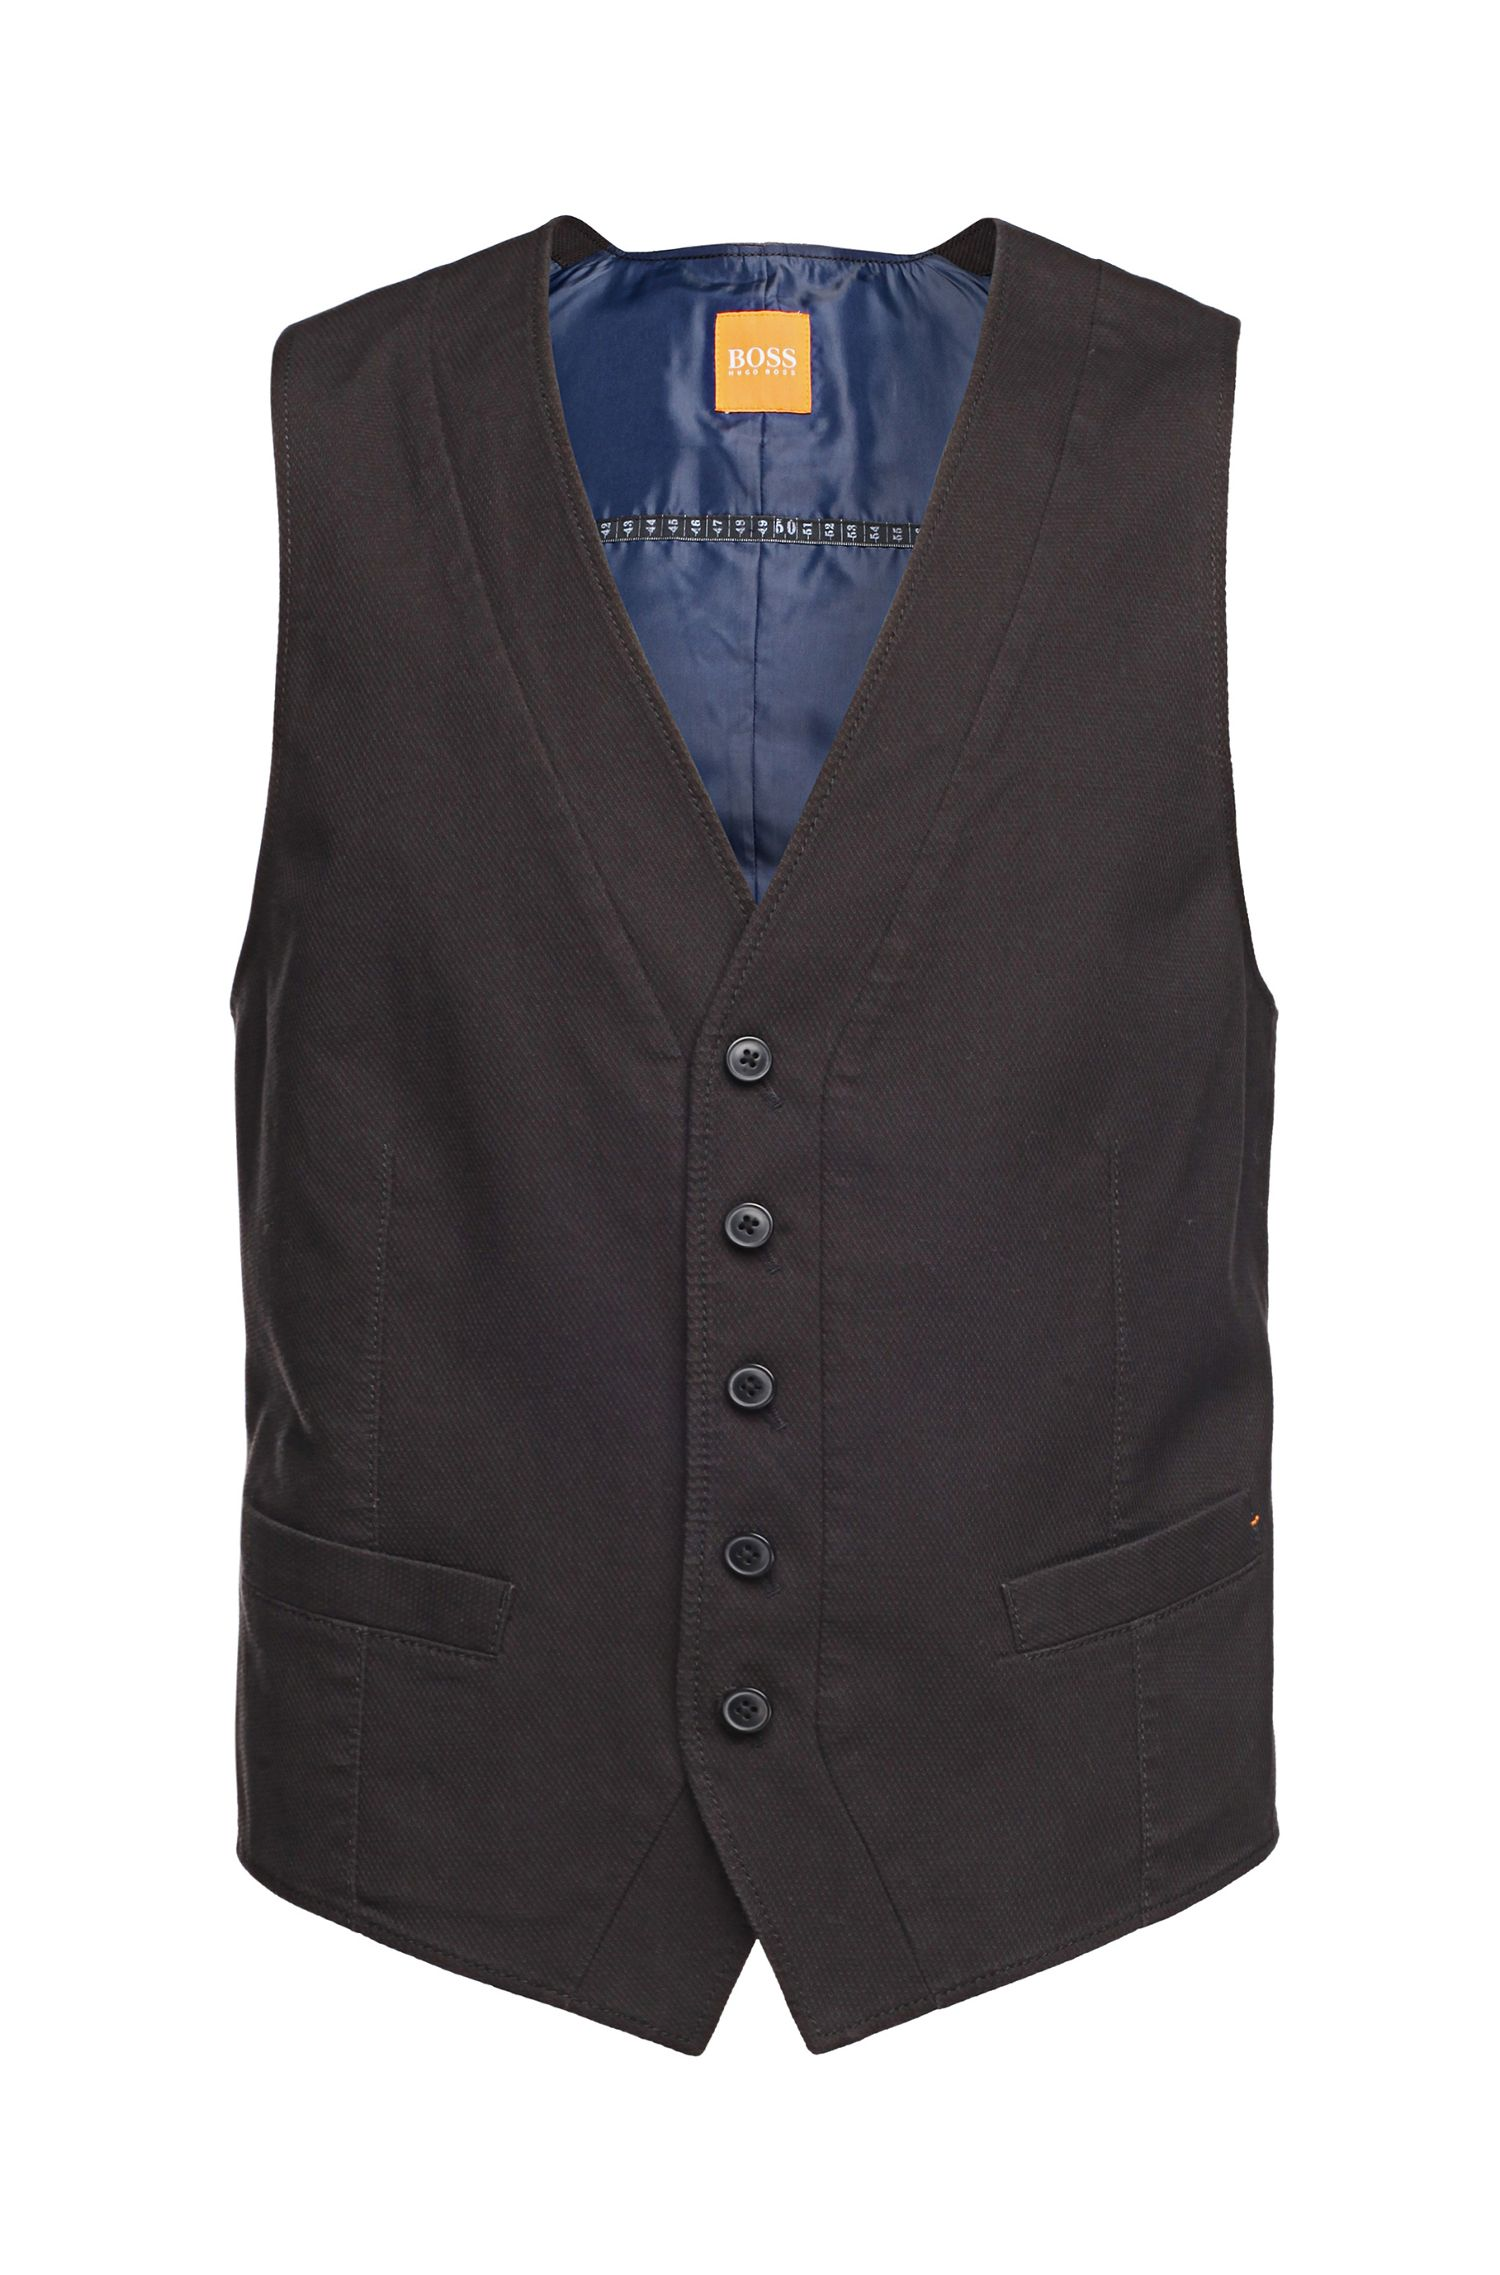 'Bosset_BS-W' | Slim Fit, Stretch Cotton Vest